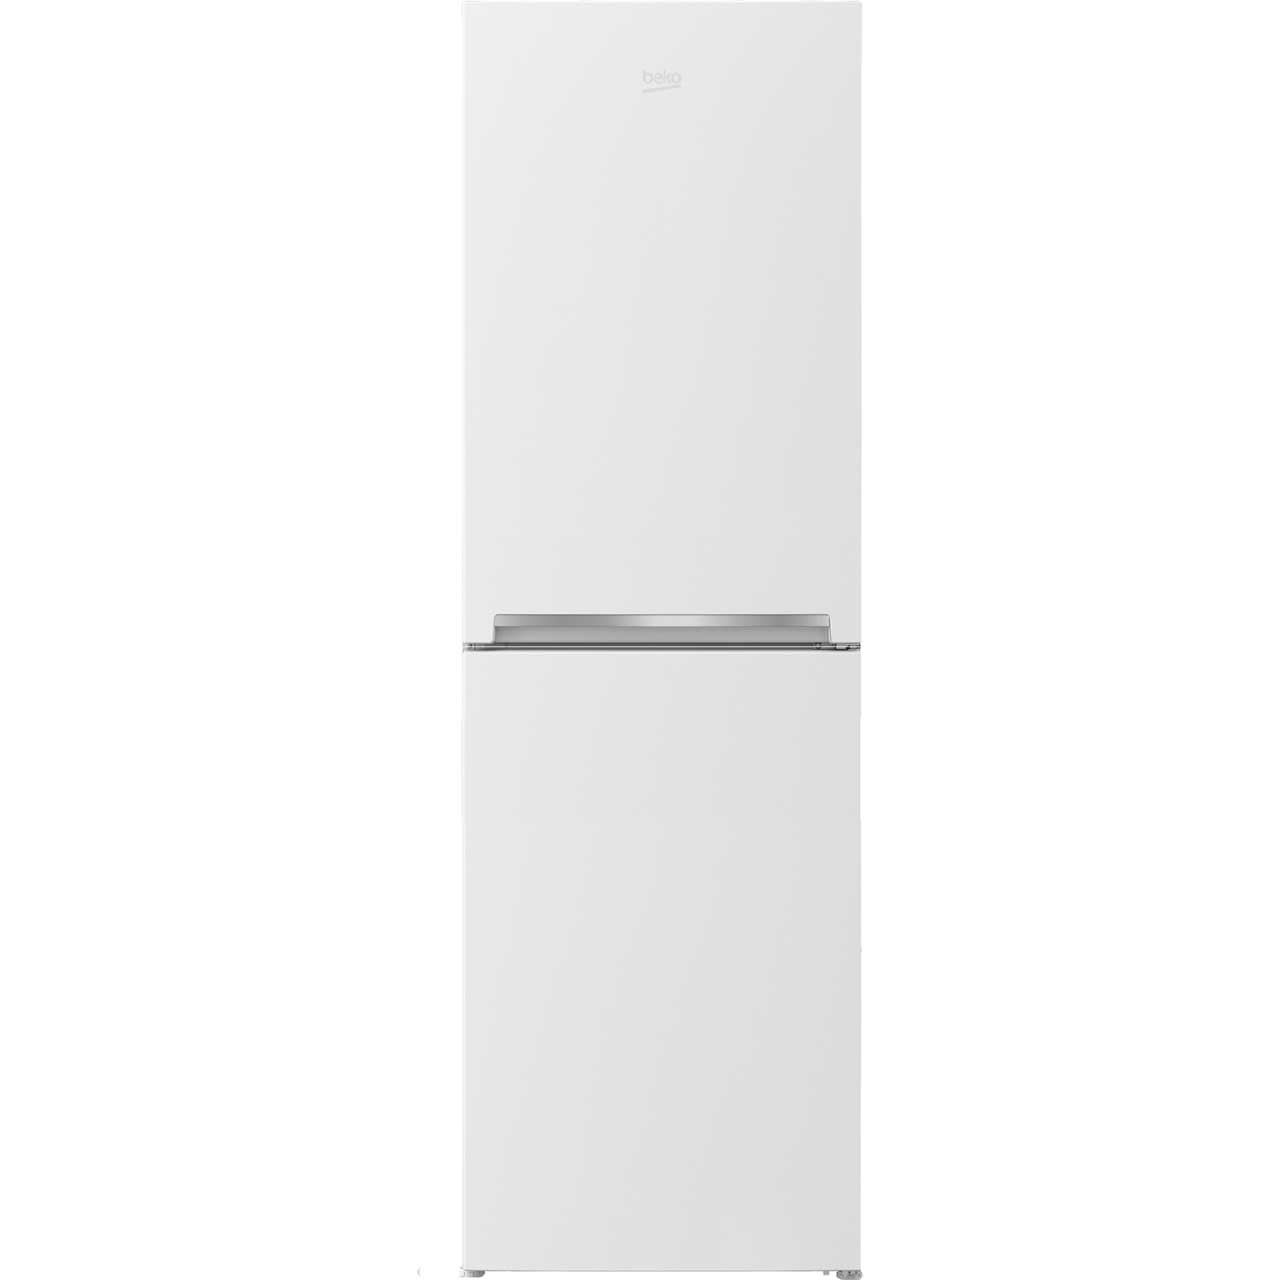 Beko CRFG1552W Free Standing Fridge Freezer Frost Free in White